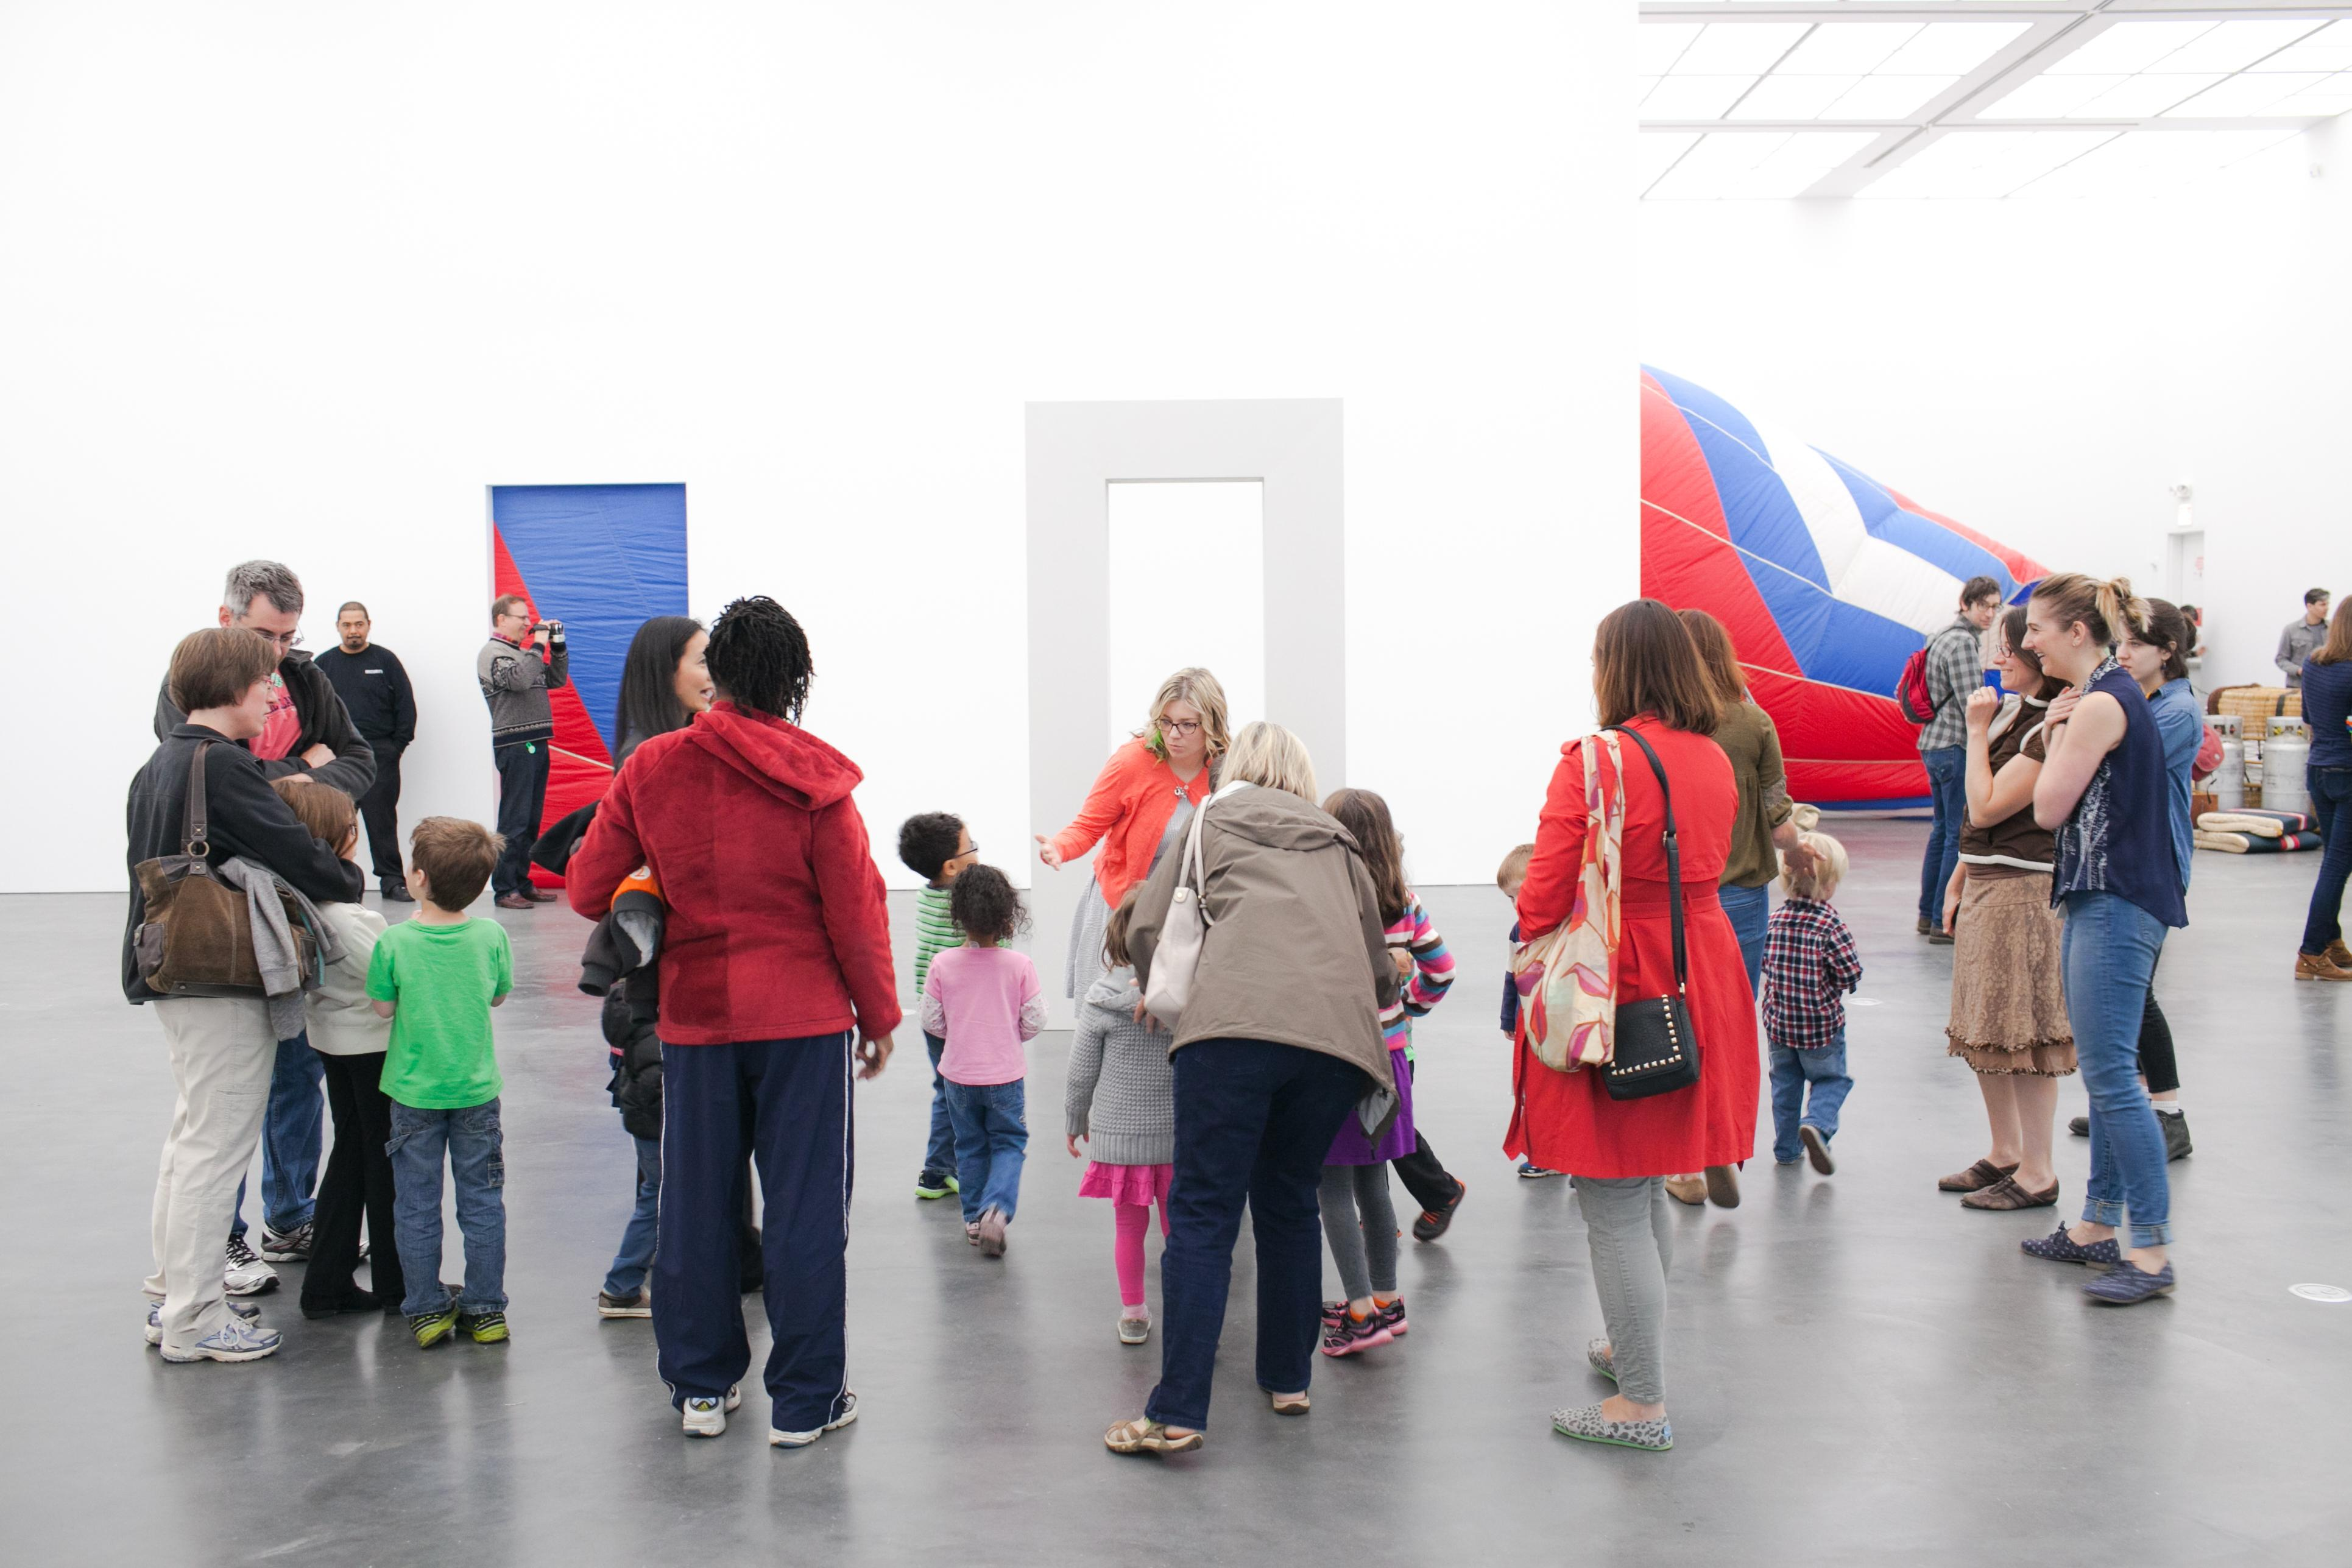 A large group of children and adults gather around a freestanding doorway-like sculpture in a brightly lit gallery space.